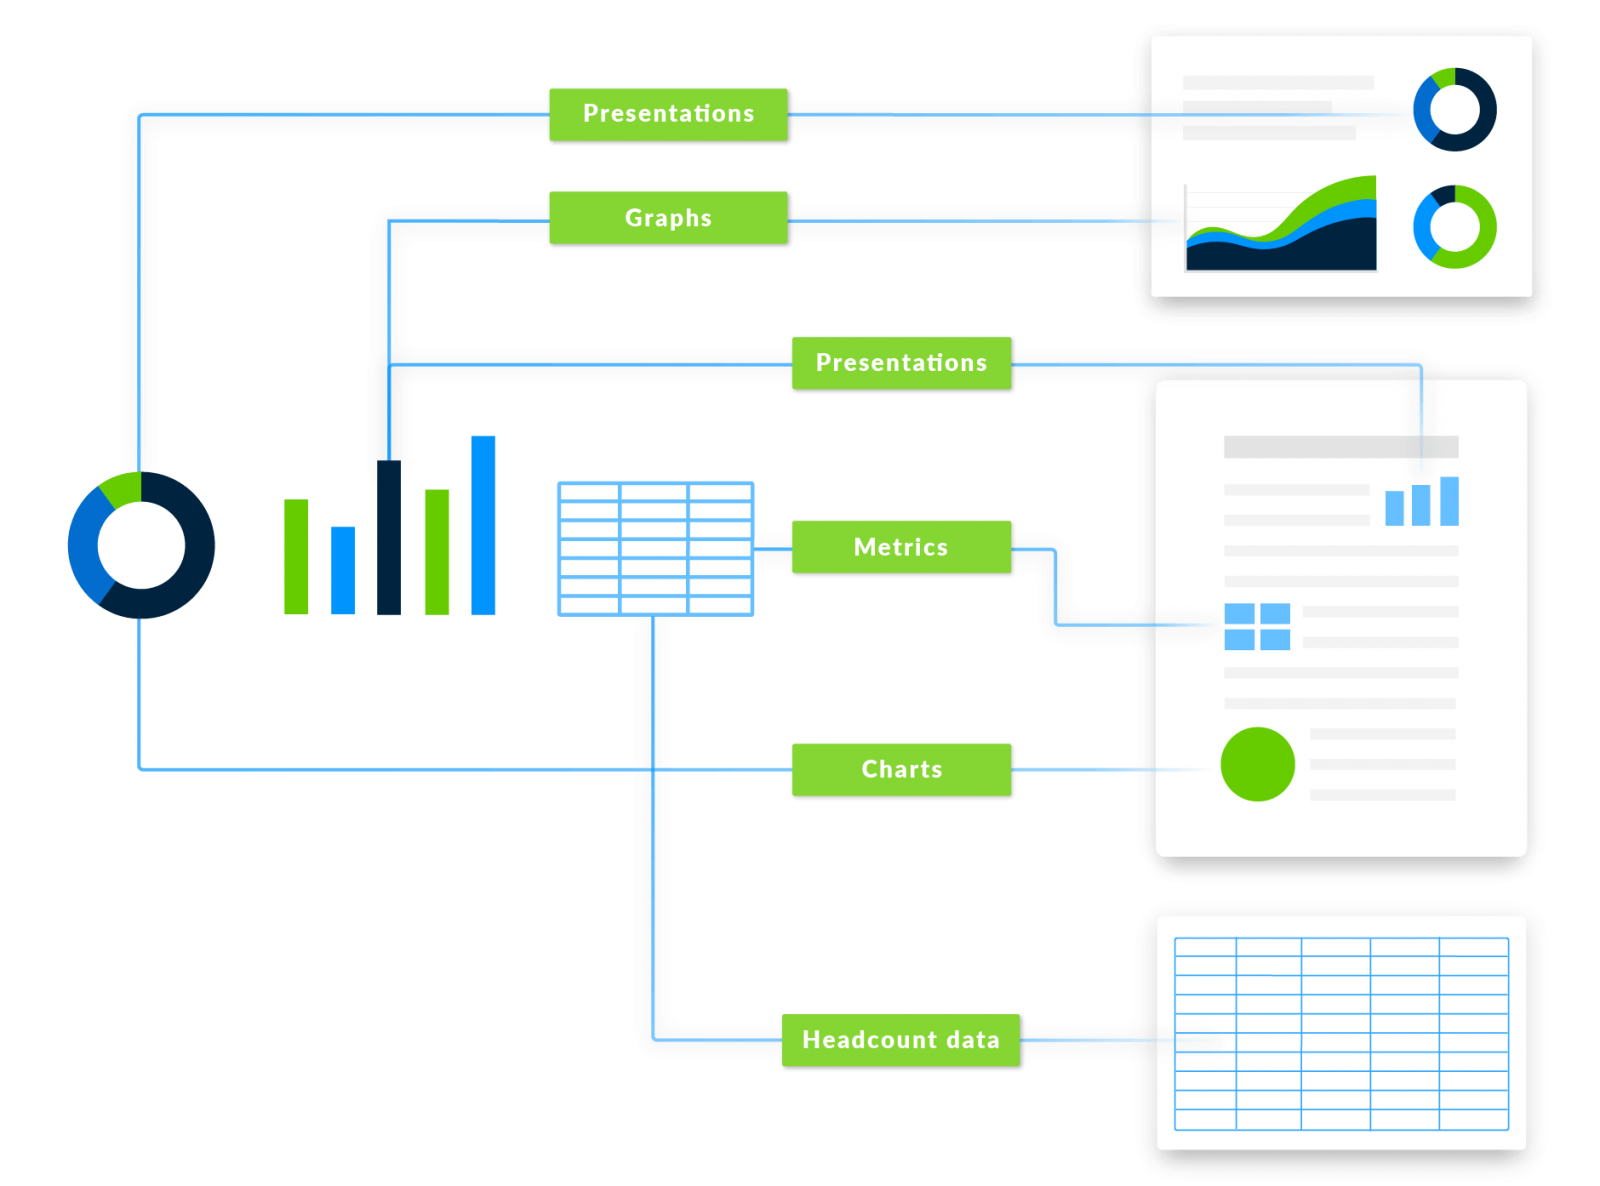 diagram showing how you can connect data to presentations, graphs, charts in the workiva platform